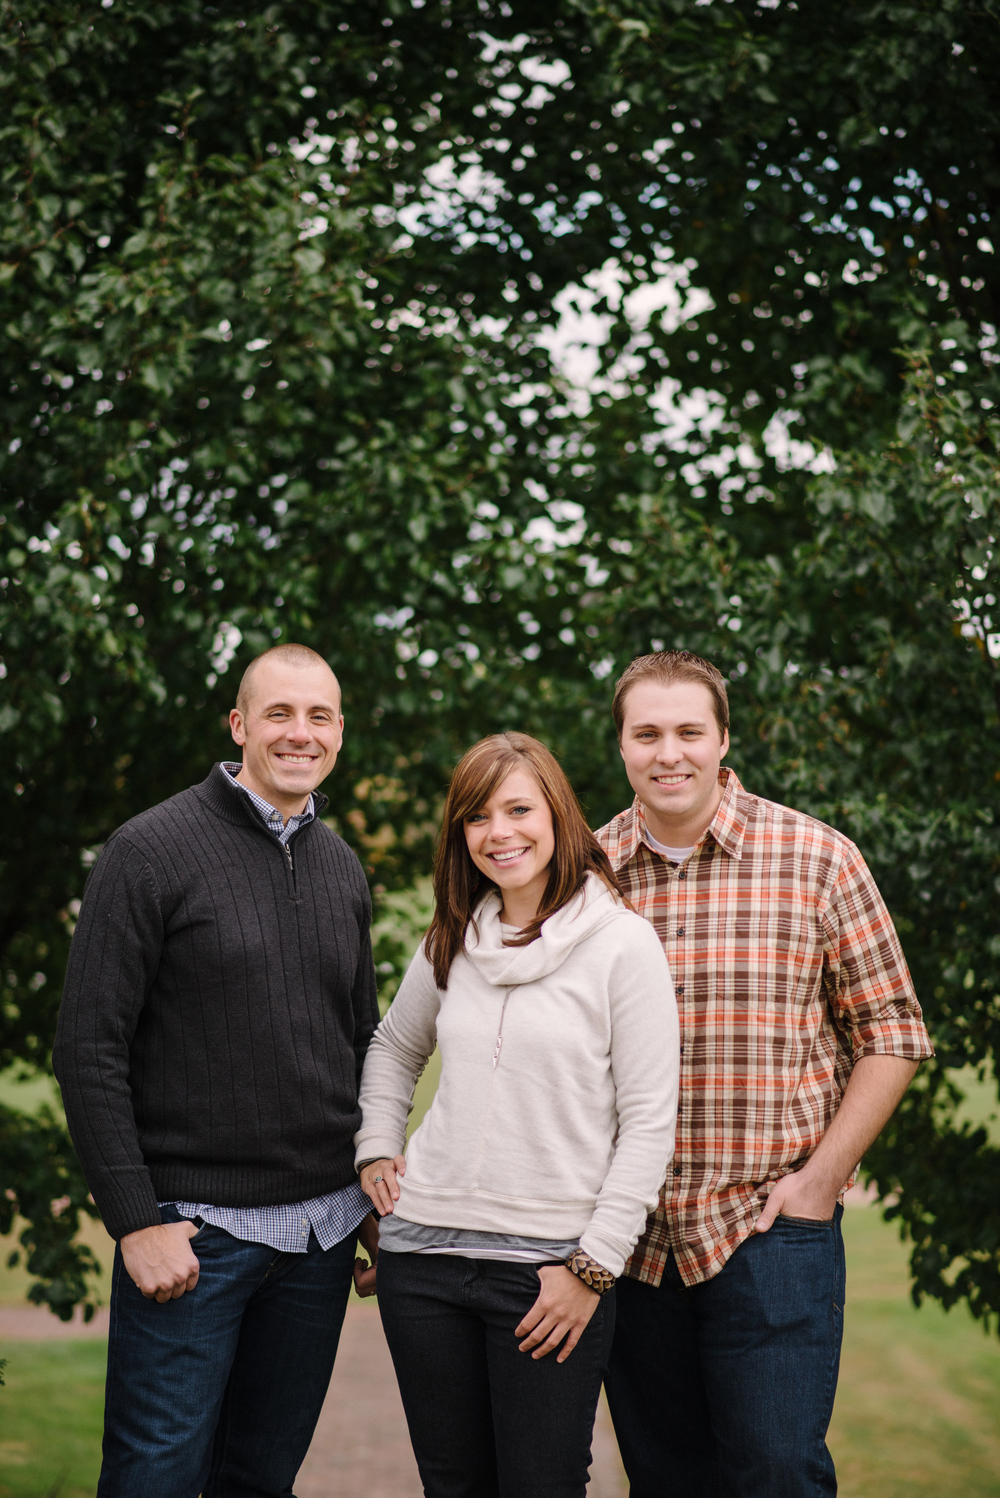 Matt_Swetel_Photography_Steck_Family_Blog008.jpg